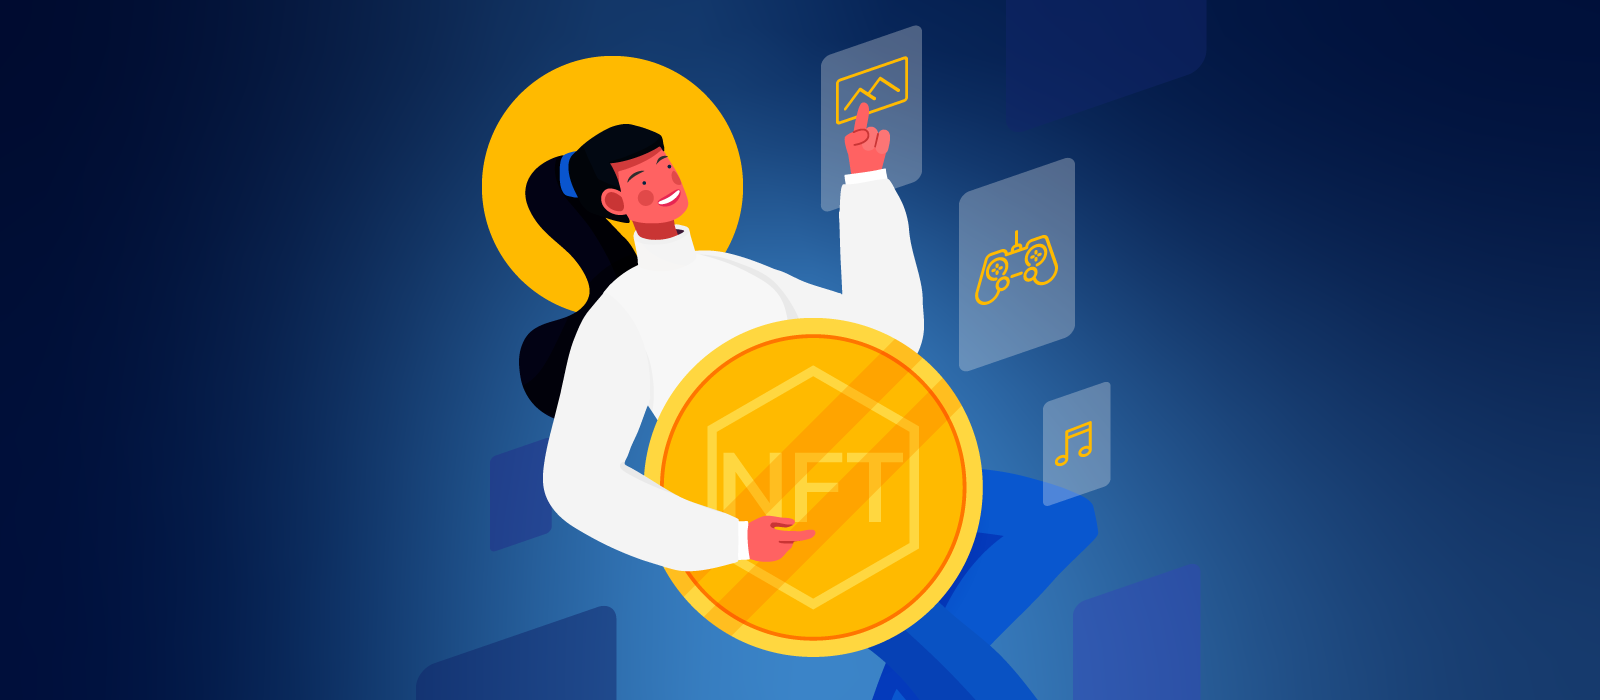 A person holding an NFT